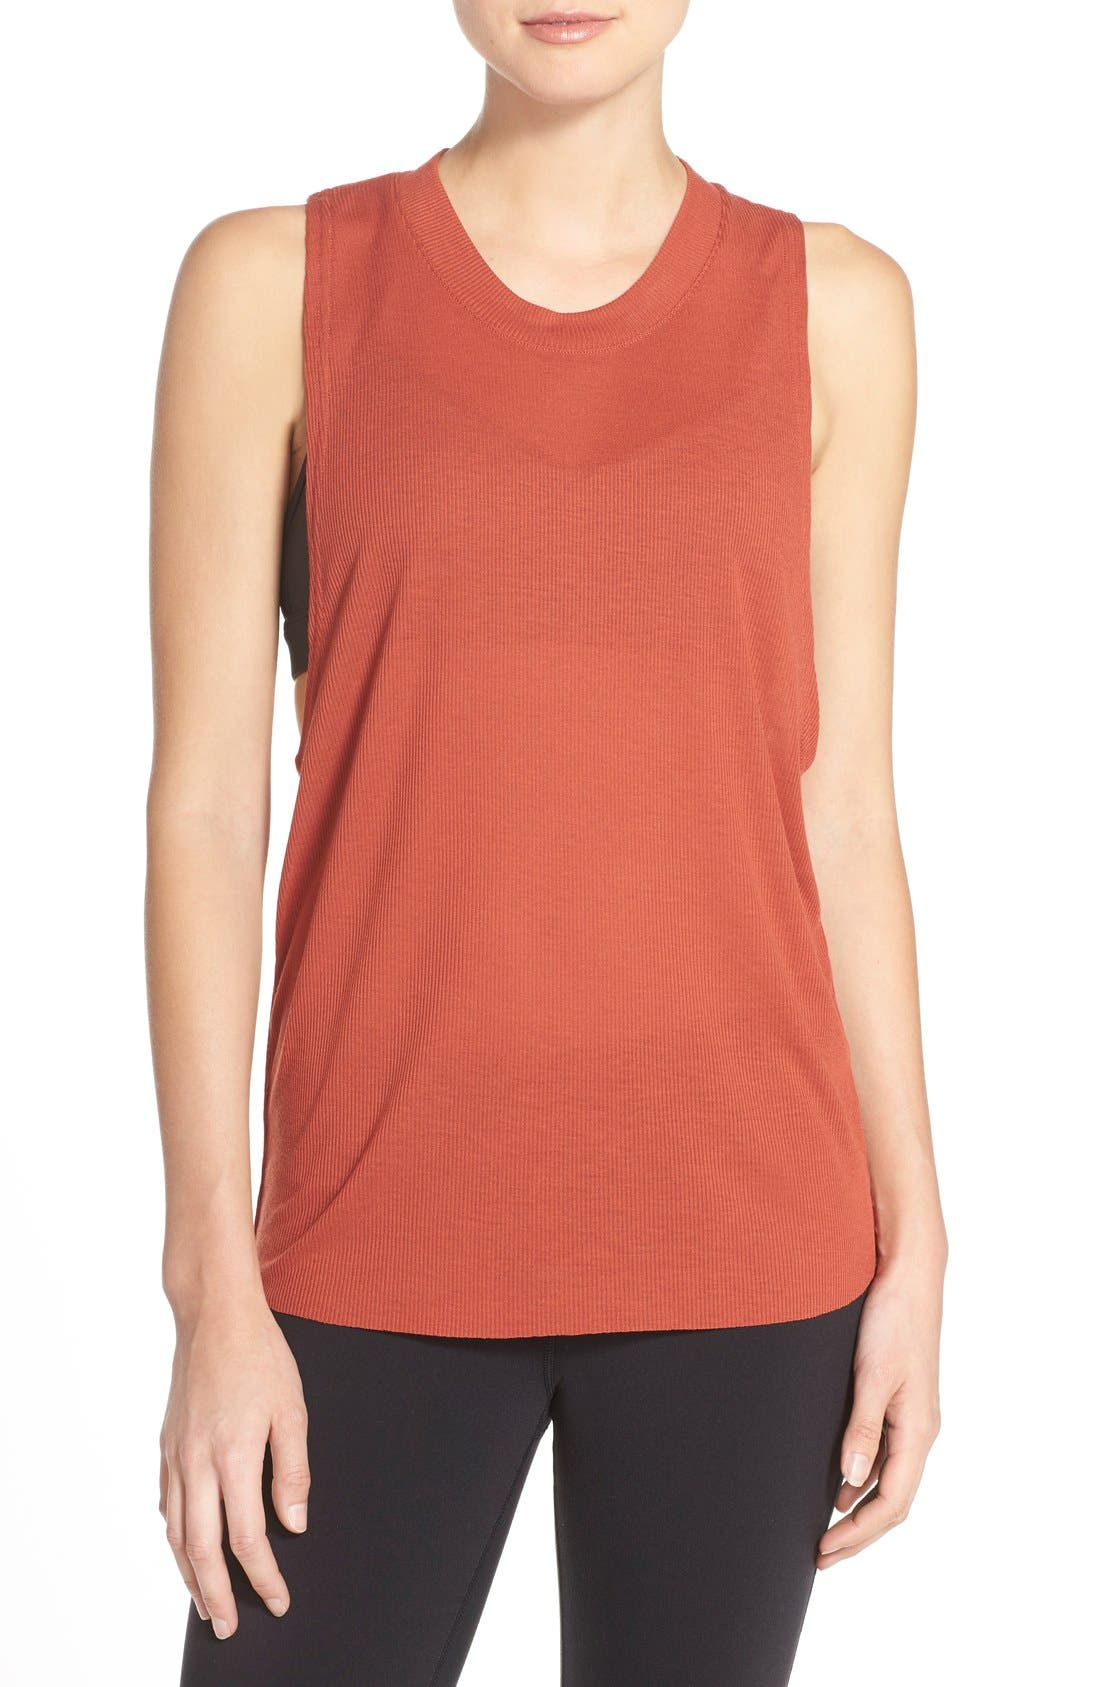 Alternate Image 1 Selected - Alo Heat Wave Ribbed Muscle Tee